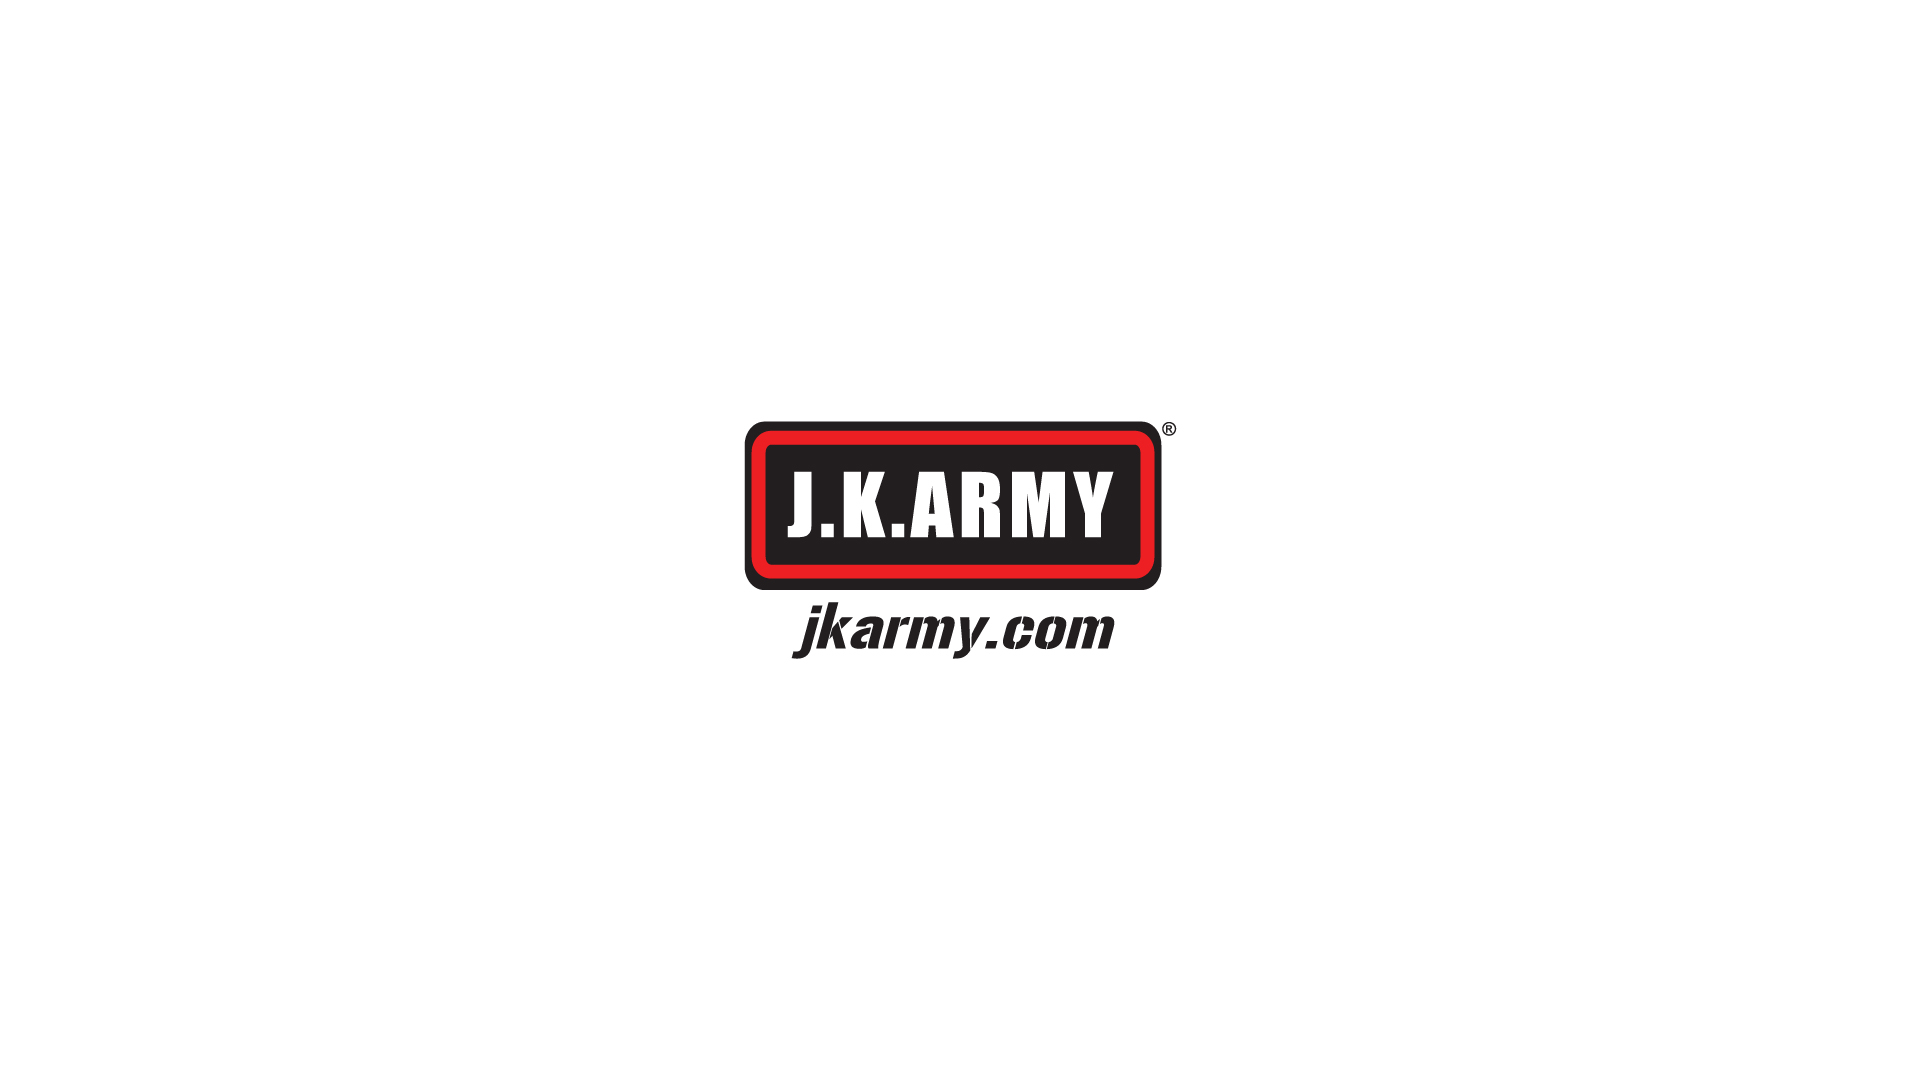 jkarmy logo and wallpapers 1920x1080 1.jpg